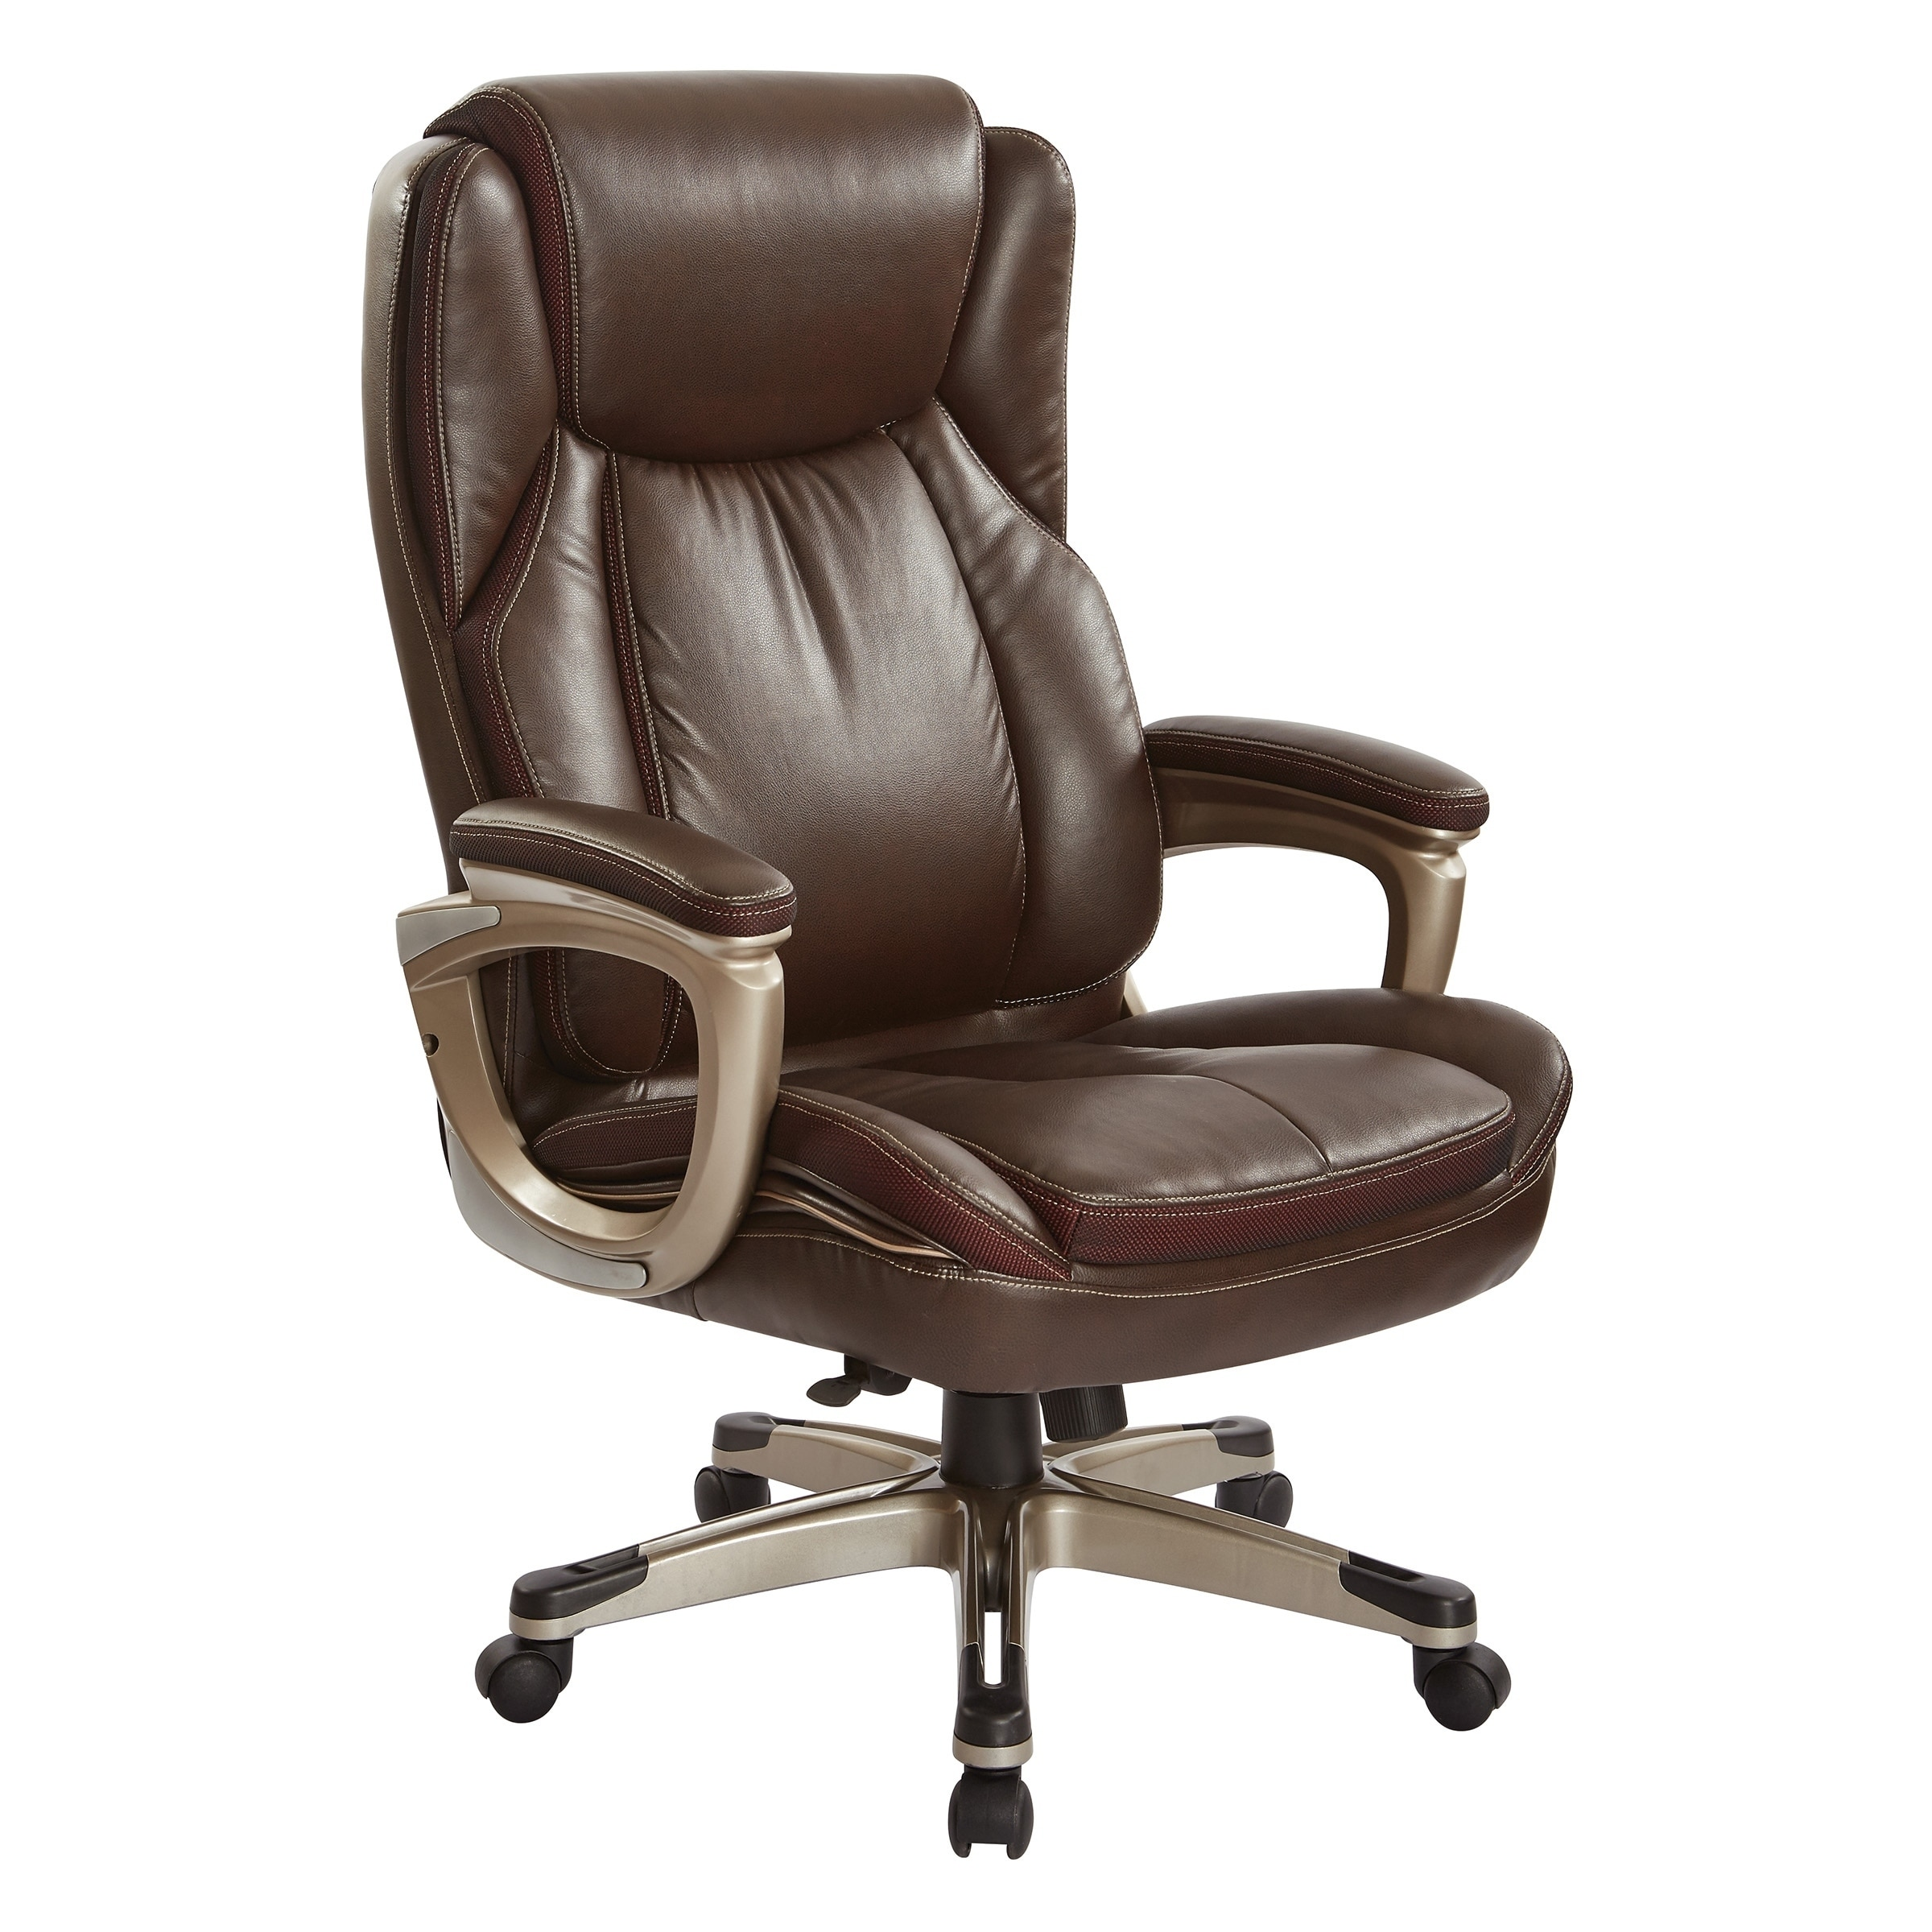 Executive Leather Chair Work Smart Executive Espresso Bonded Leather Chair With Cable Control In A Cocoa Finish